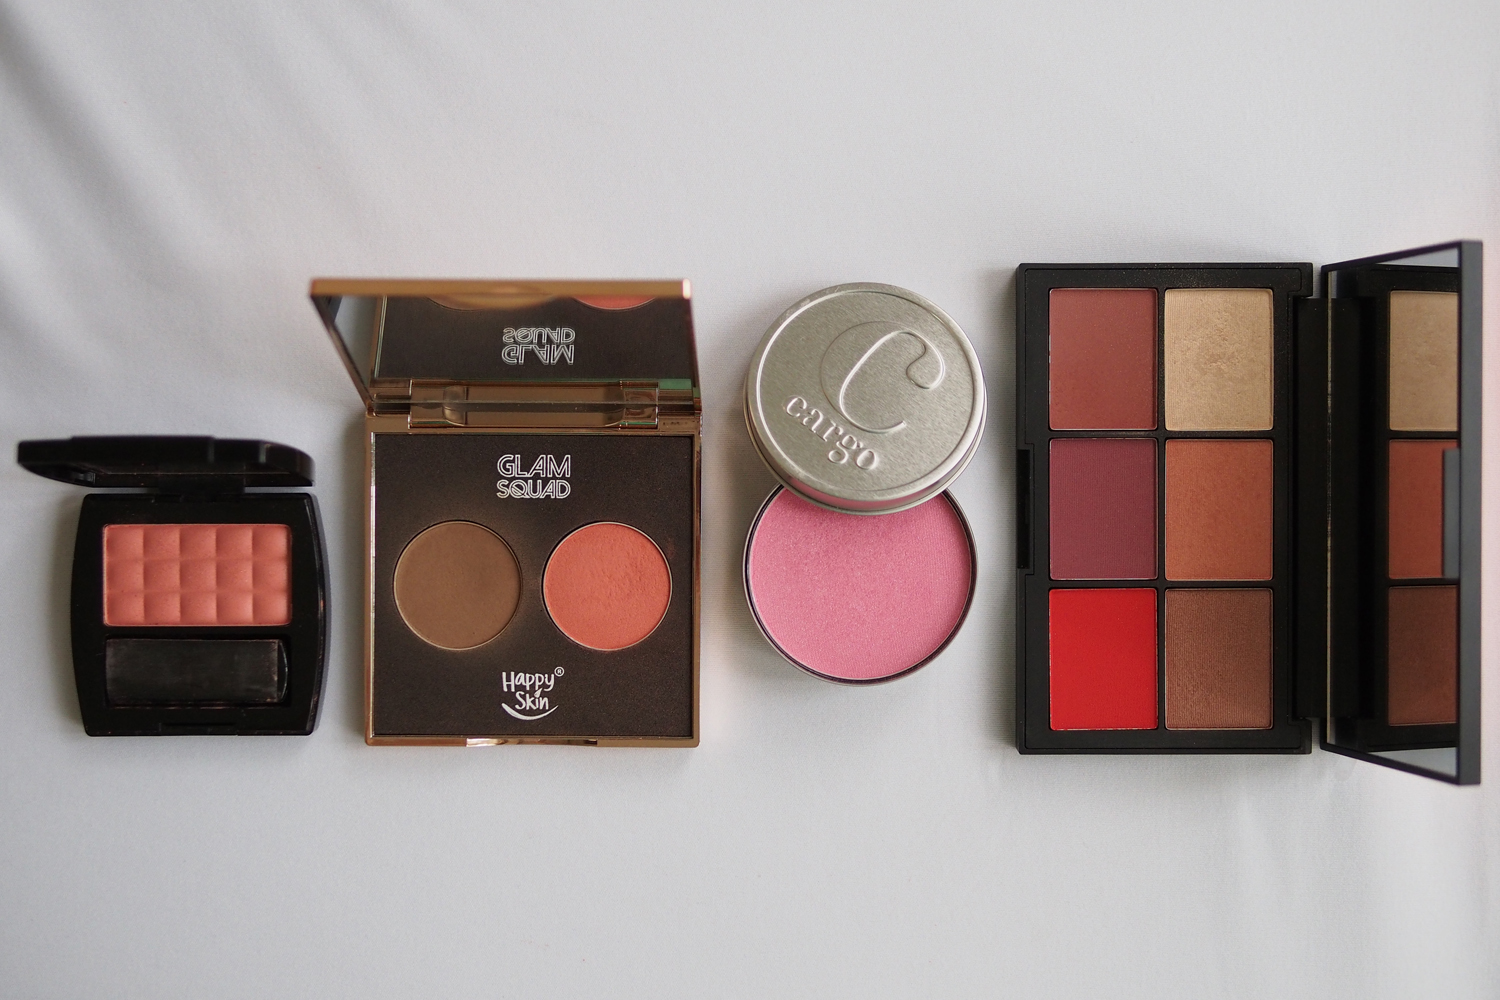 From left:Features & Shades Powder Blush in Georgia Peach (~P98.75/g), Happy Skin Glam Squad Contour & Color (~P215.33/g), Cargo Water Resistant Blush in Ibiza ~(P113.64/g), Nars Blush in Exhibit A (~P354/g)